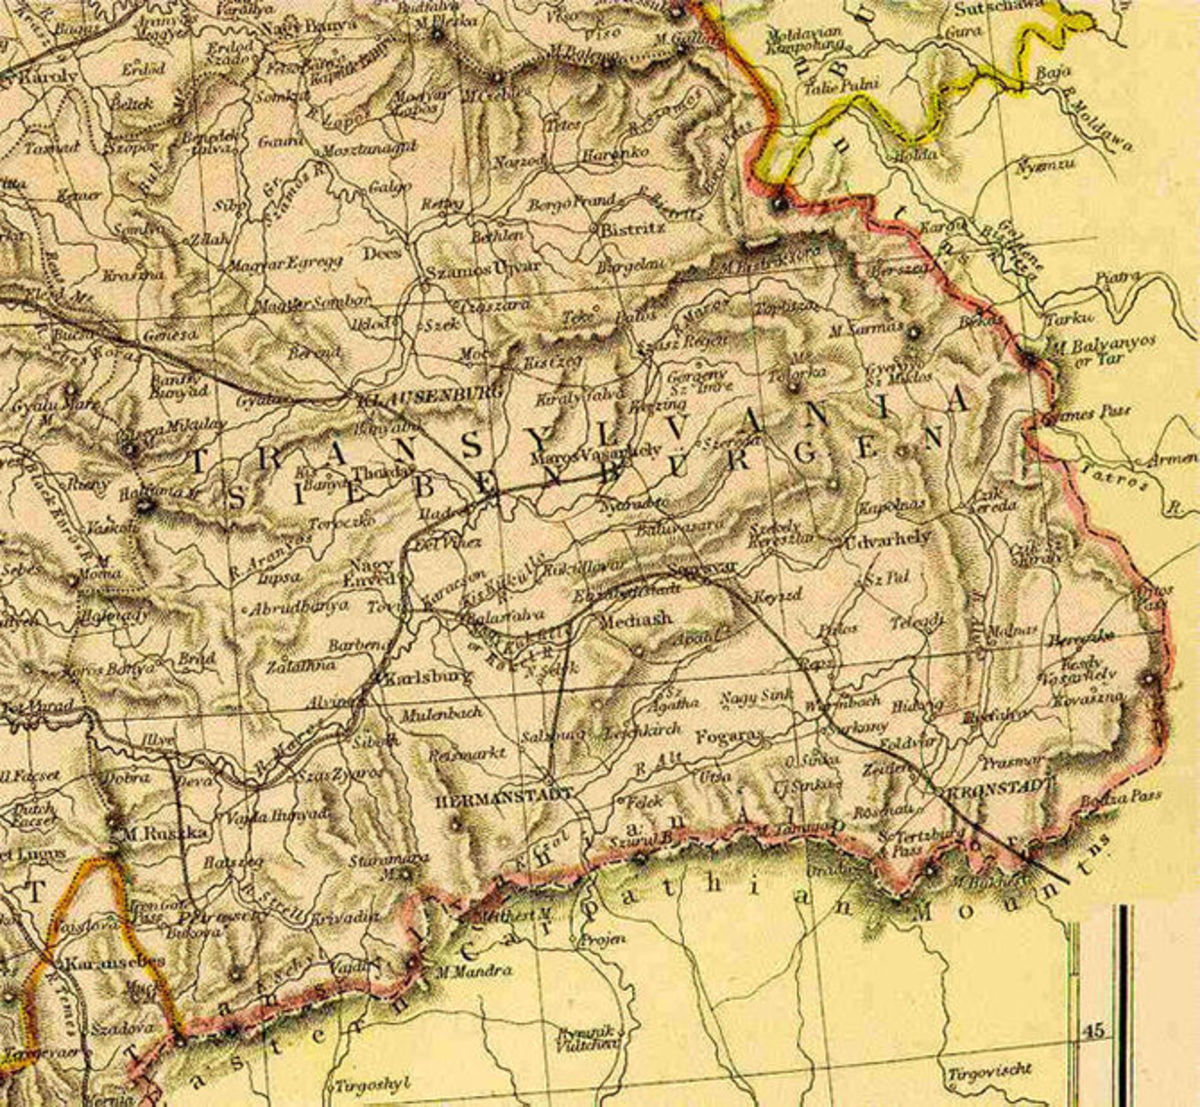 Transylvania in Hugary before 1919.  The most interesting aspect to this map is the fact that the Latin and German names are used.